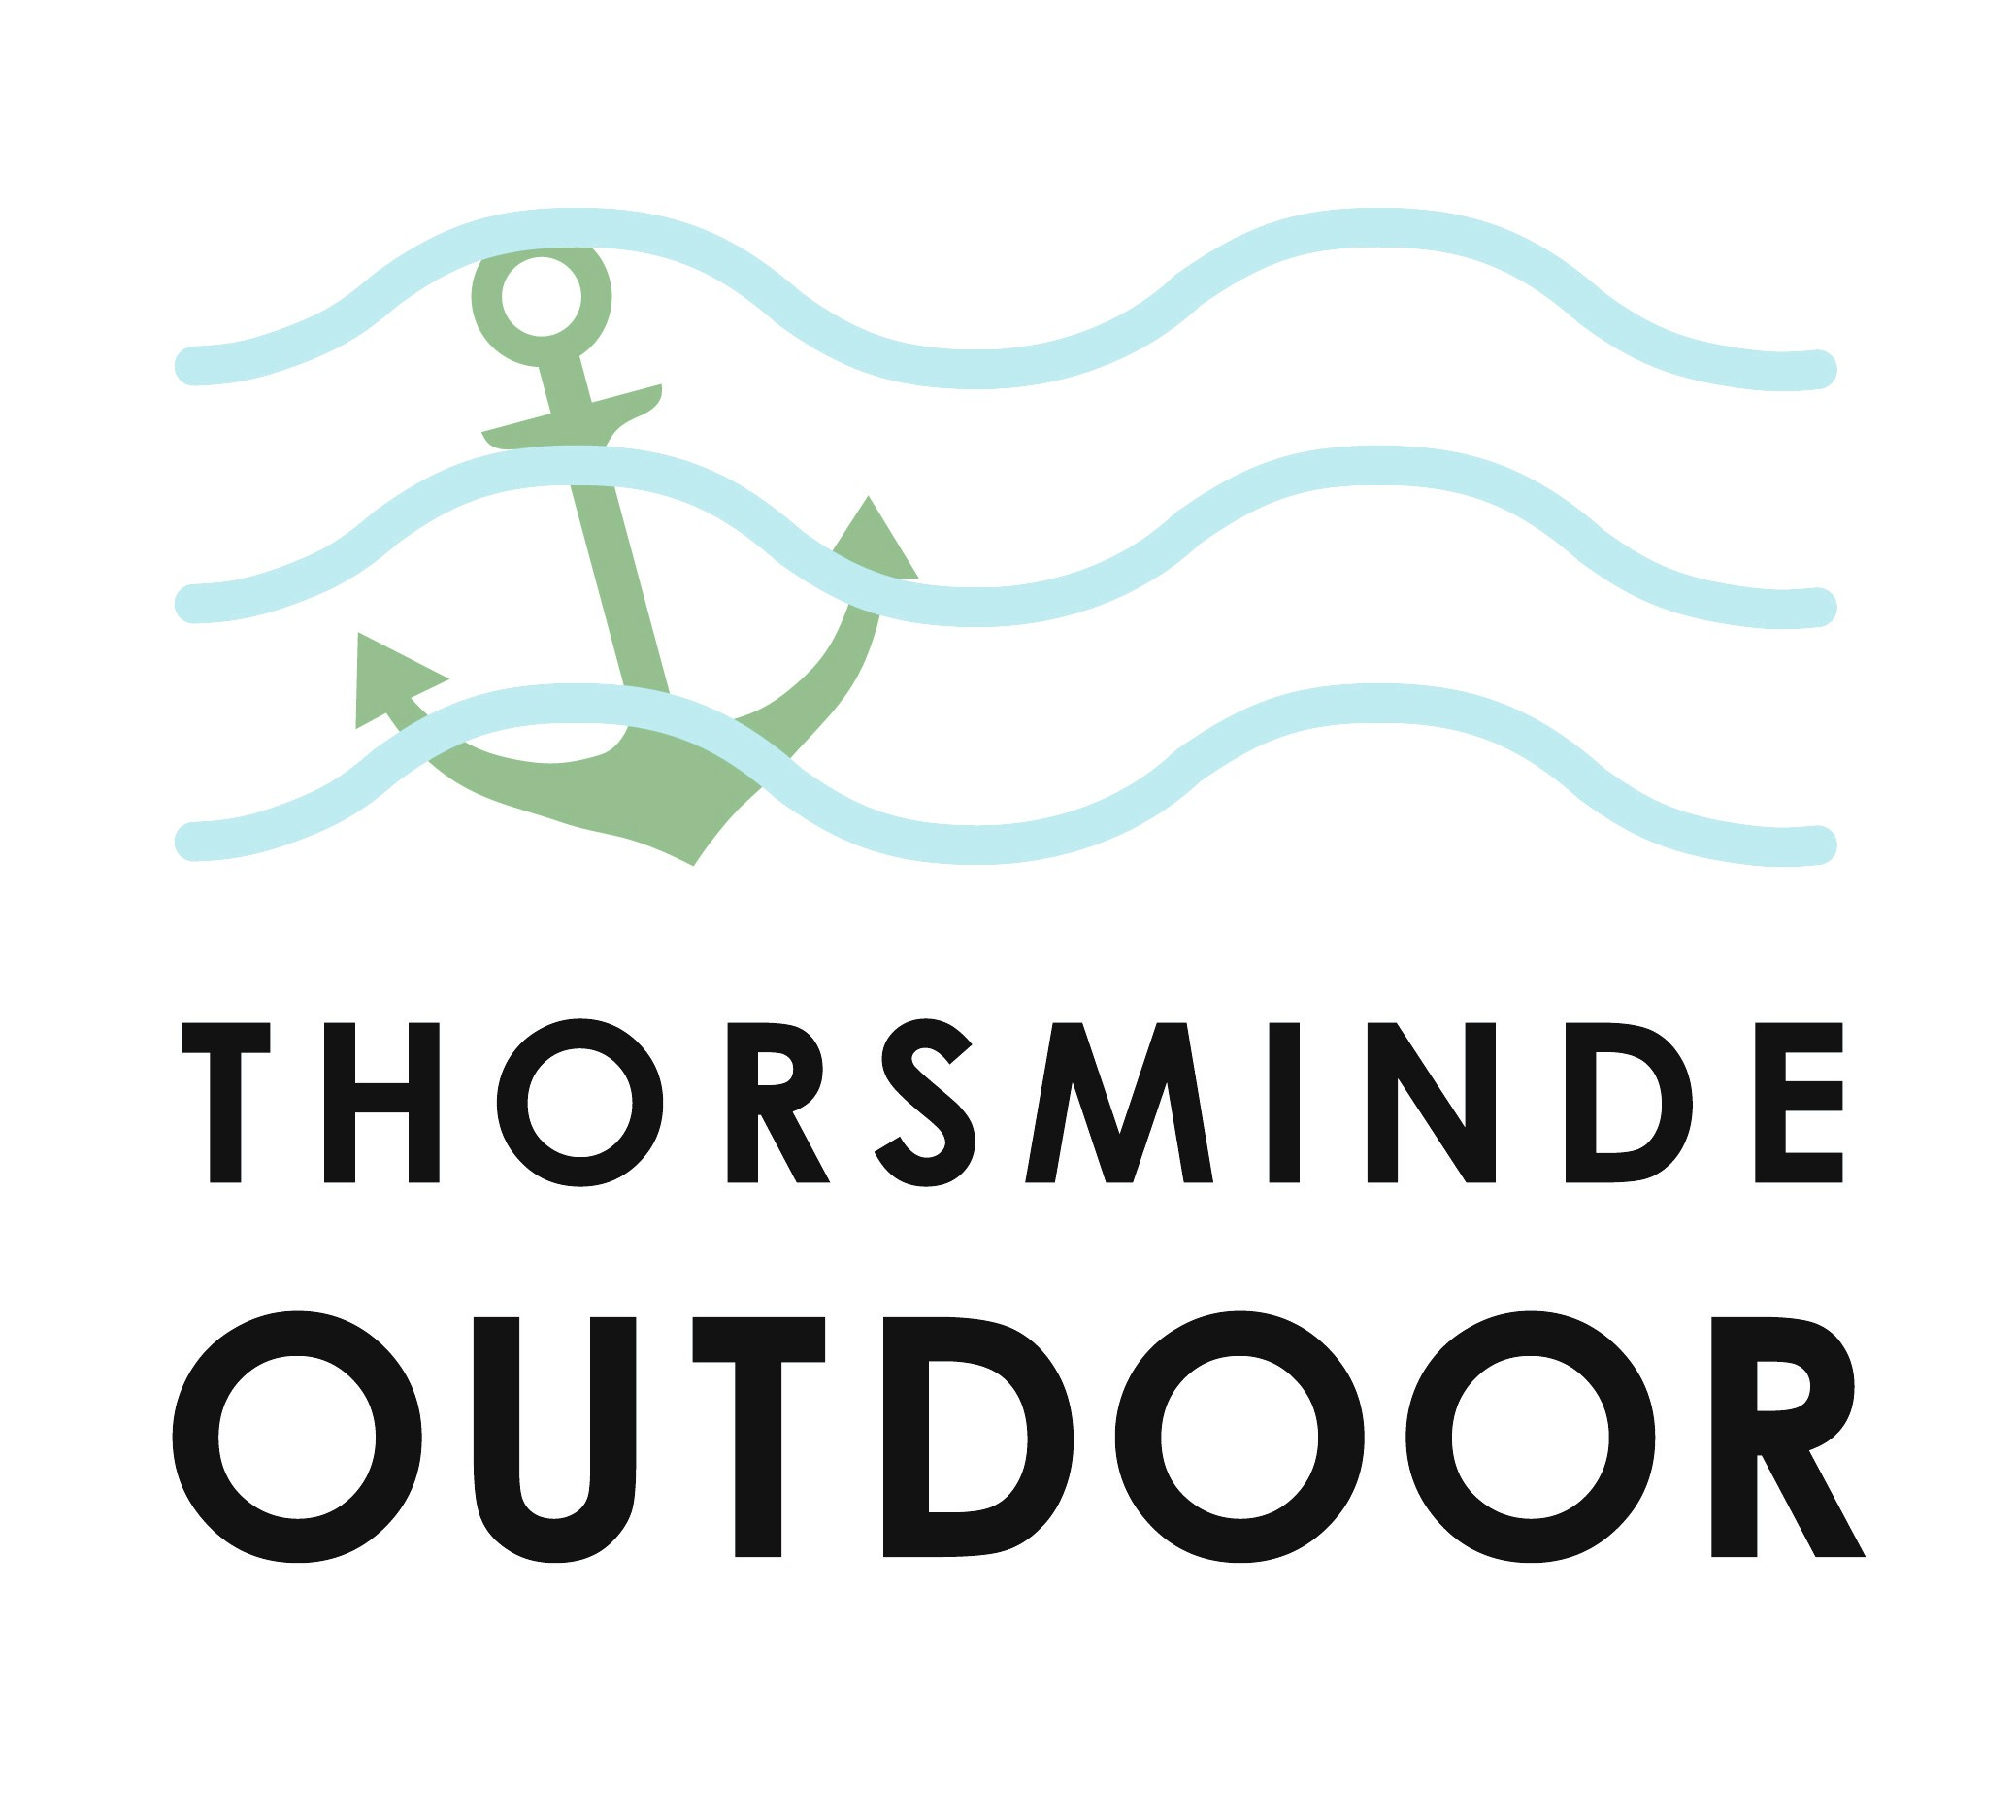 Thorsminde Outdoor